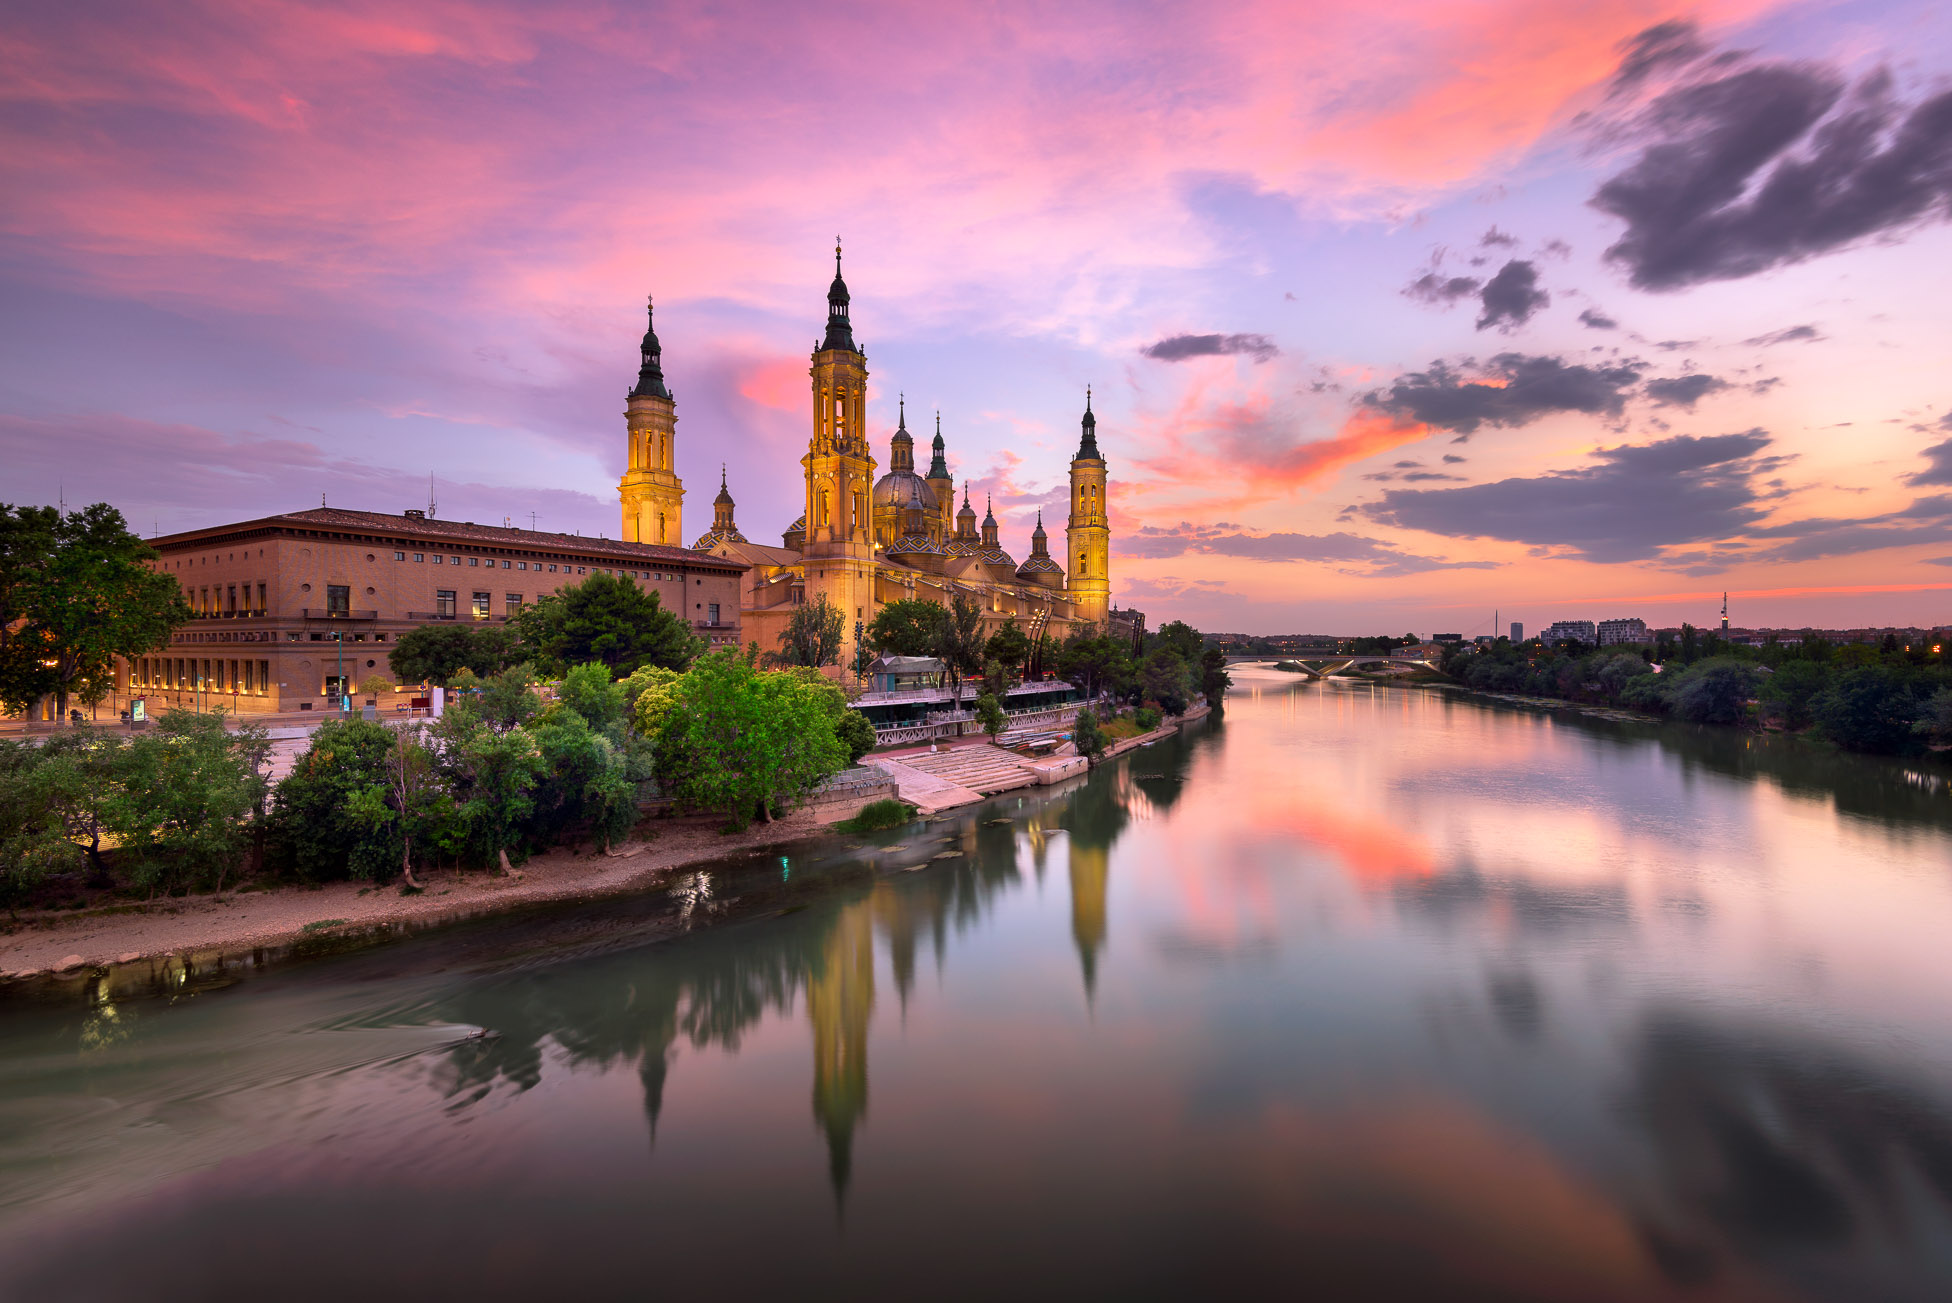 Basilica of Our Lady of the Pillar and Ebro River in the Evening, Zaragoza, Aragon, Spain